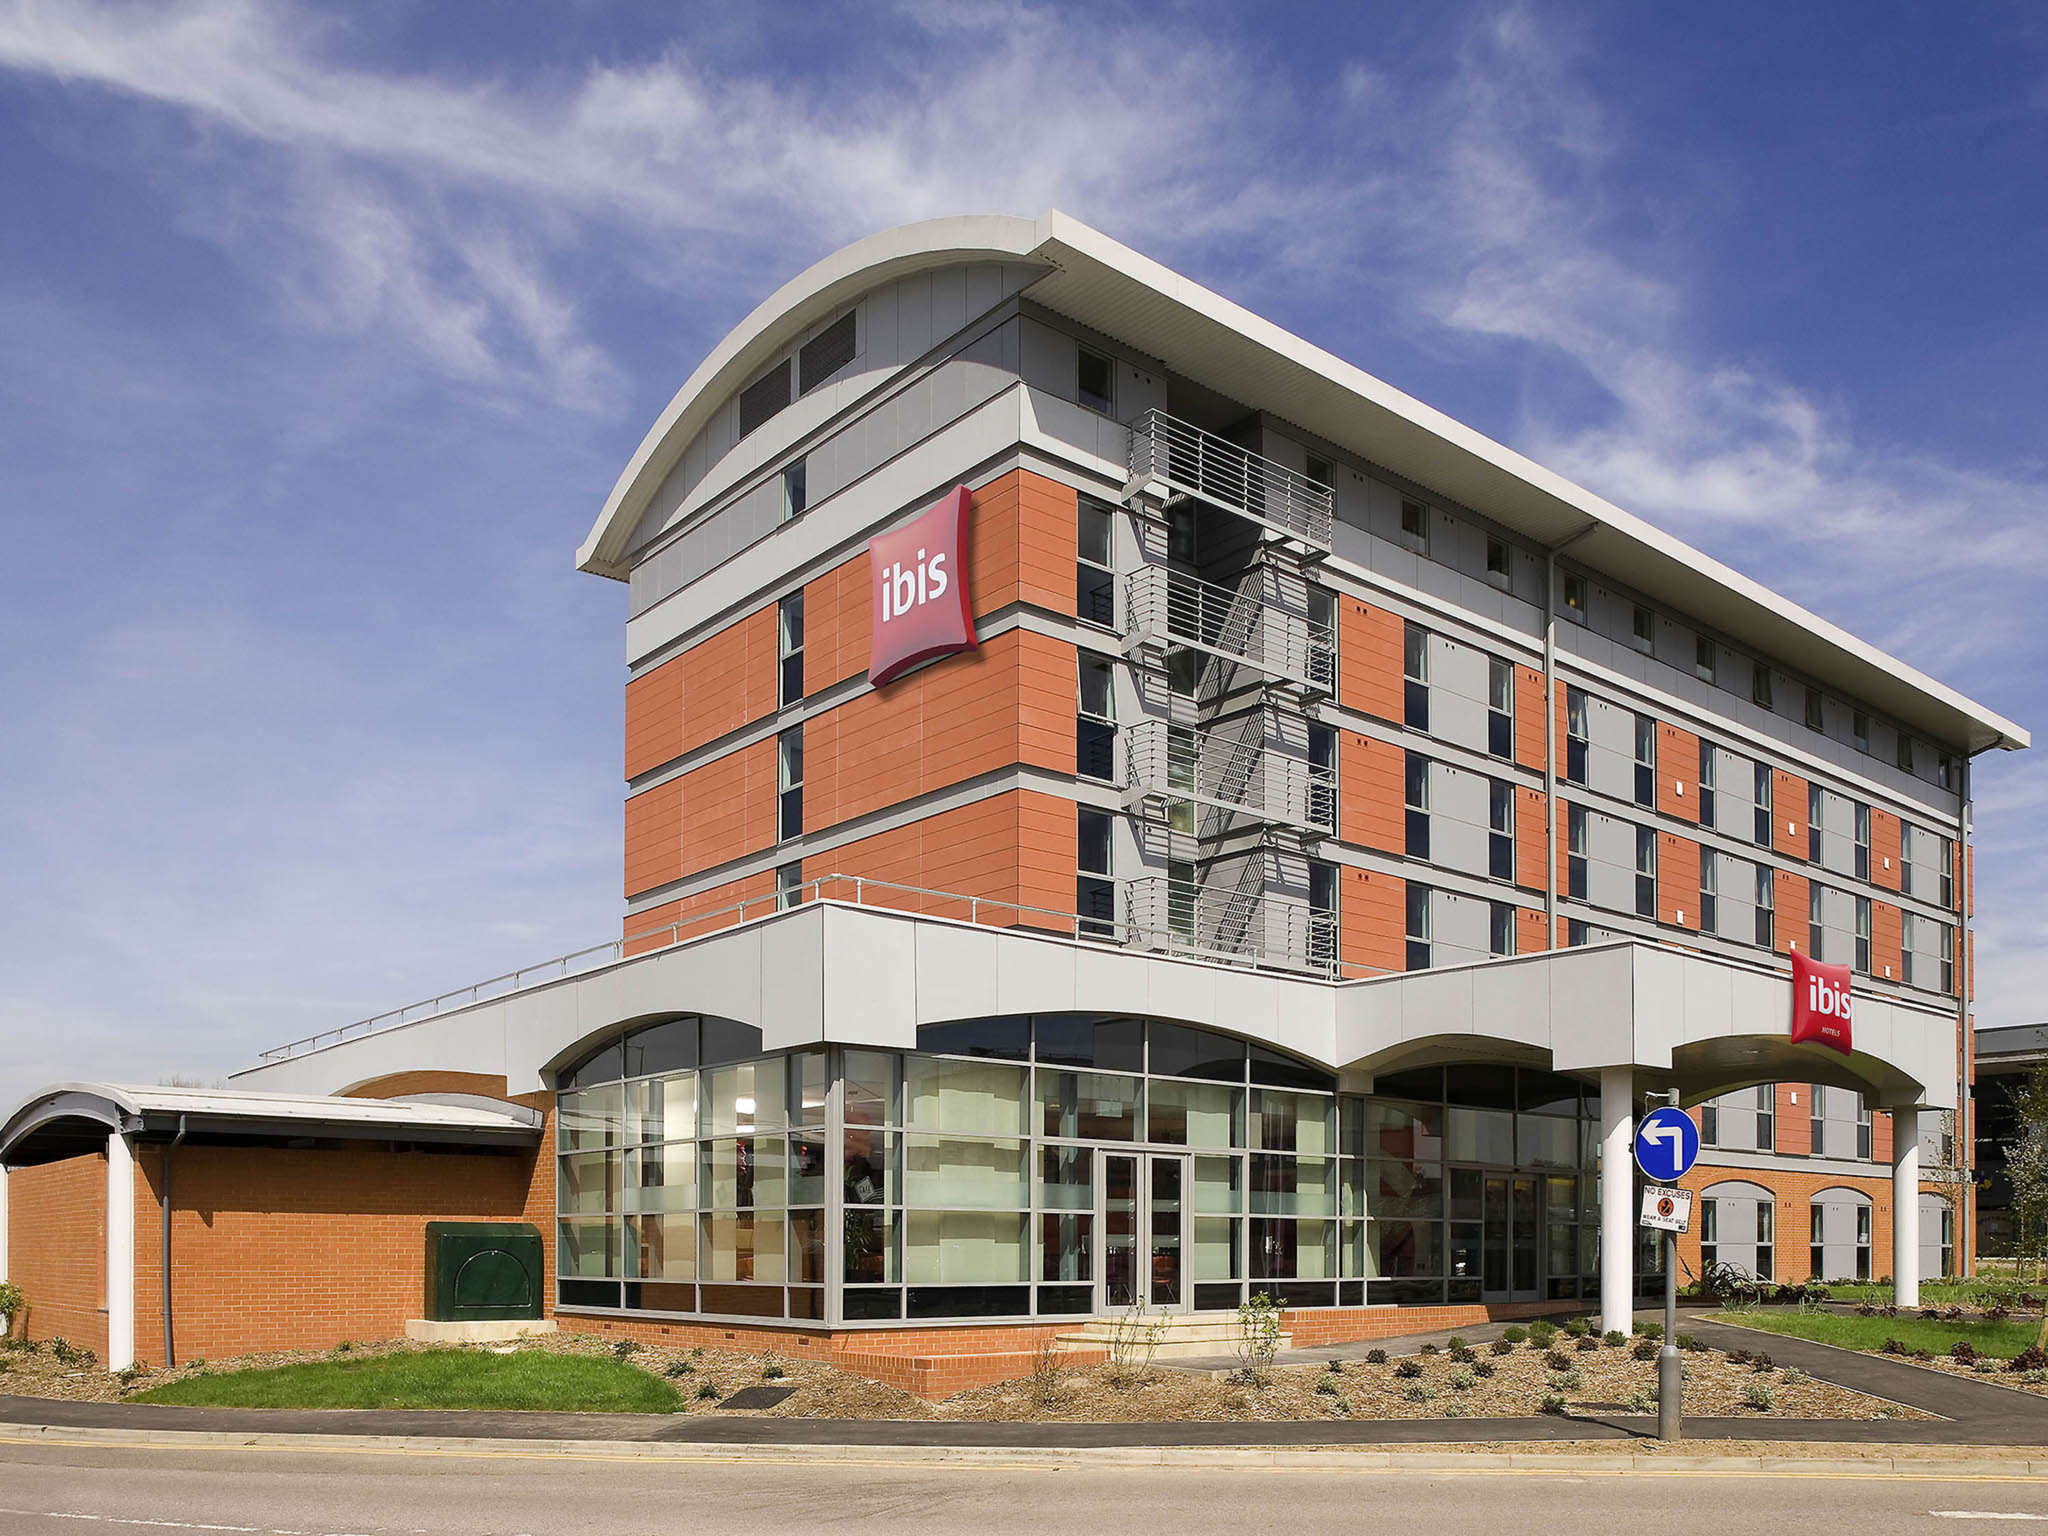 Hotel – ibis London Elstree Borehamwood